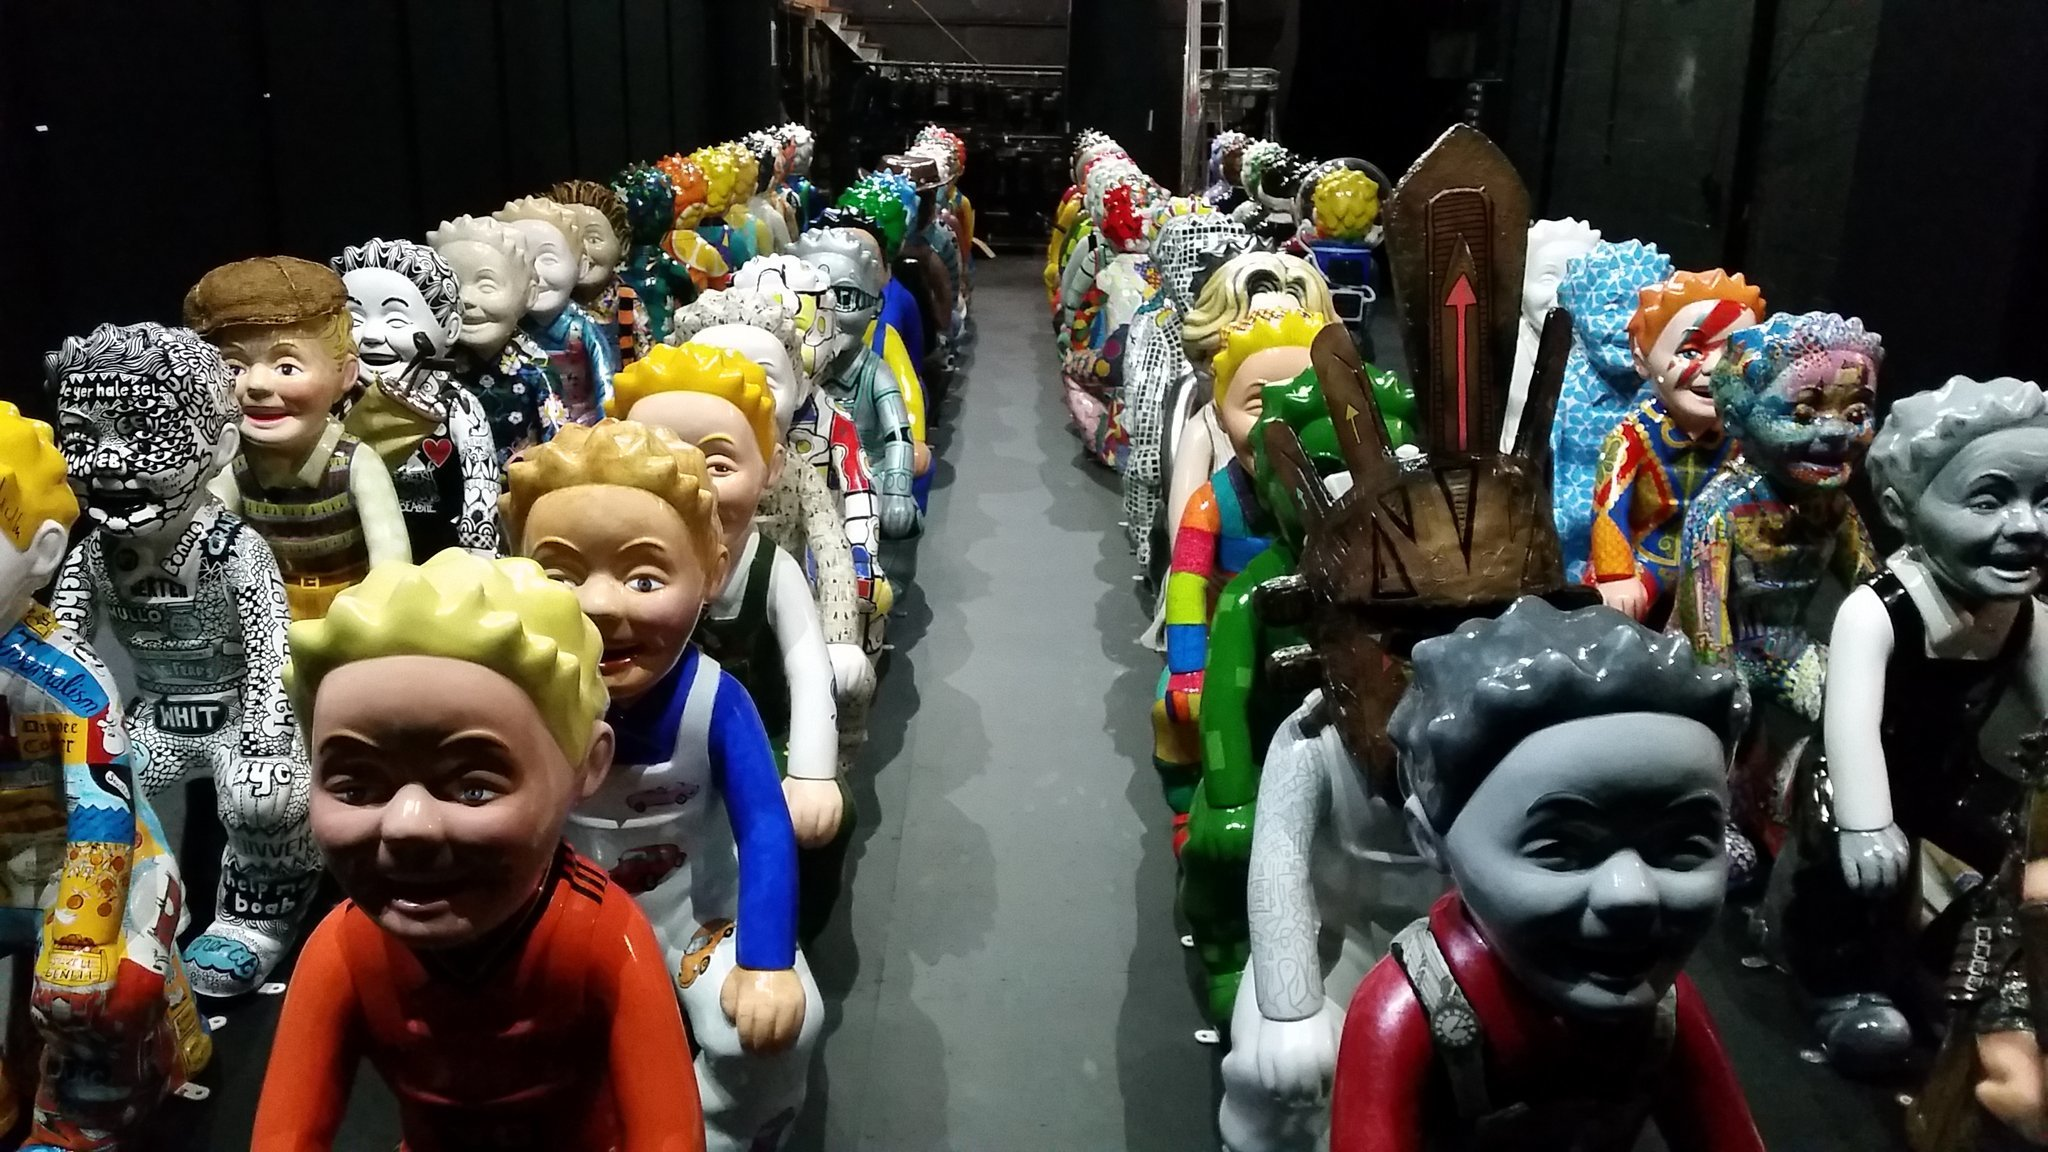 The statues at Dundee Rep, ready for auction.